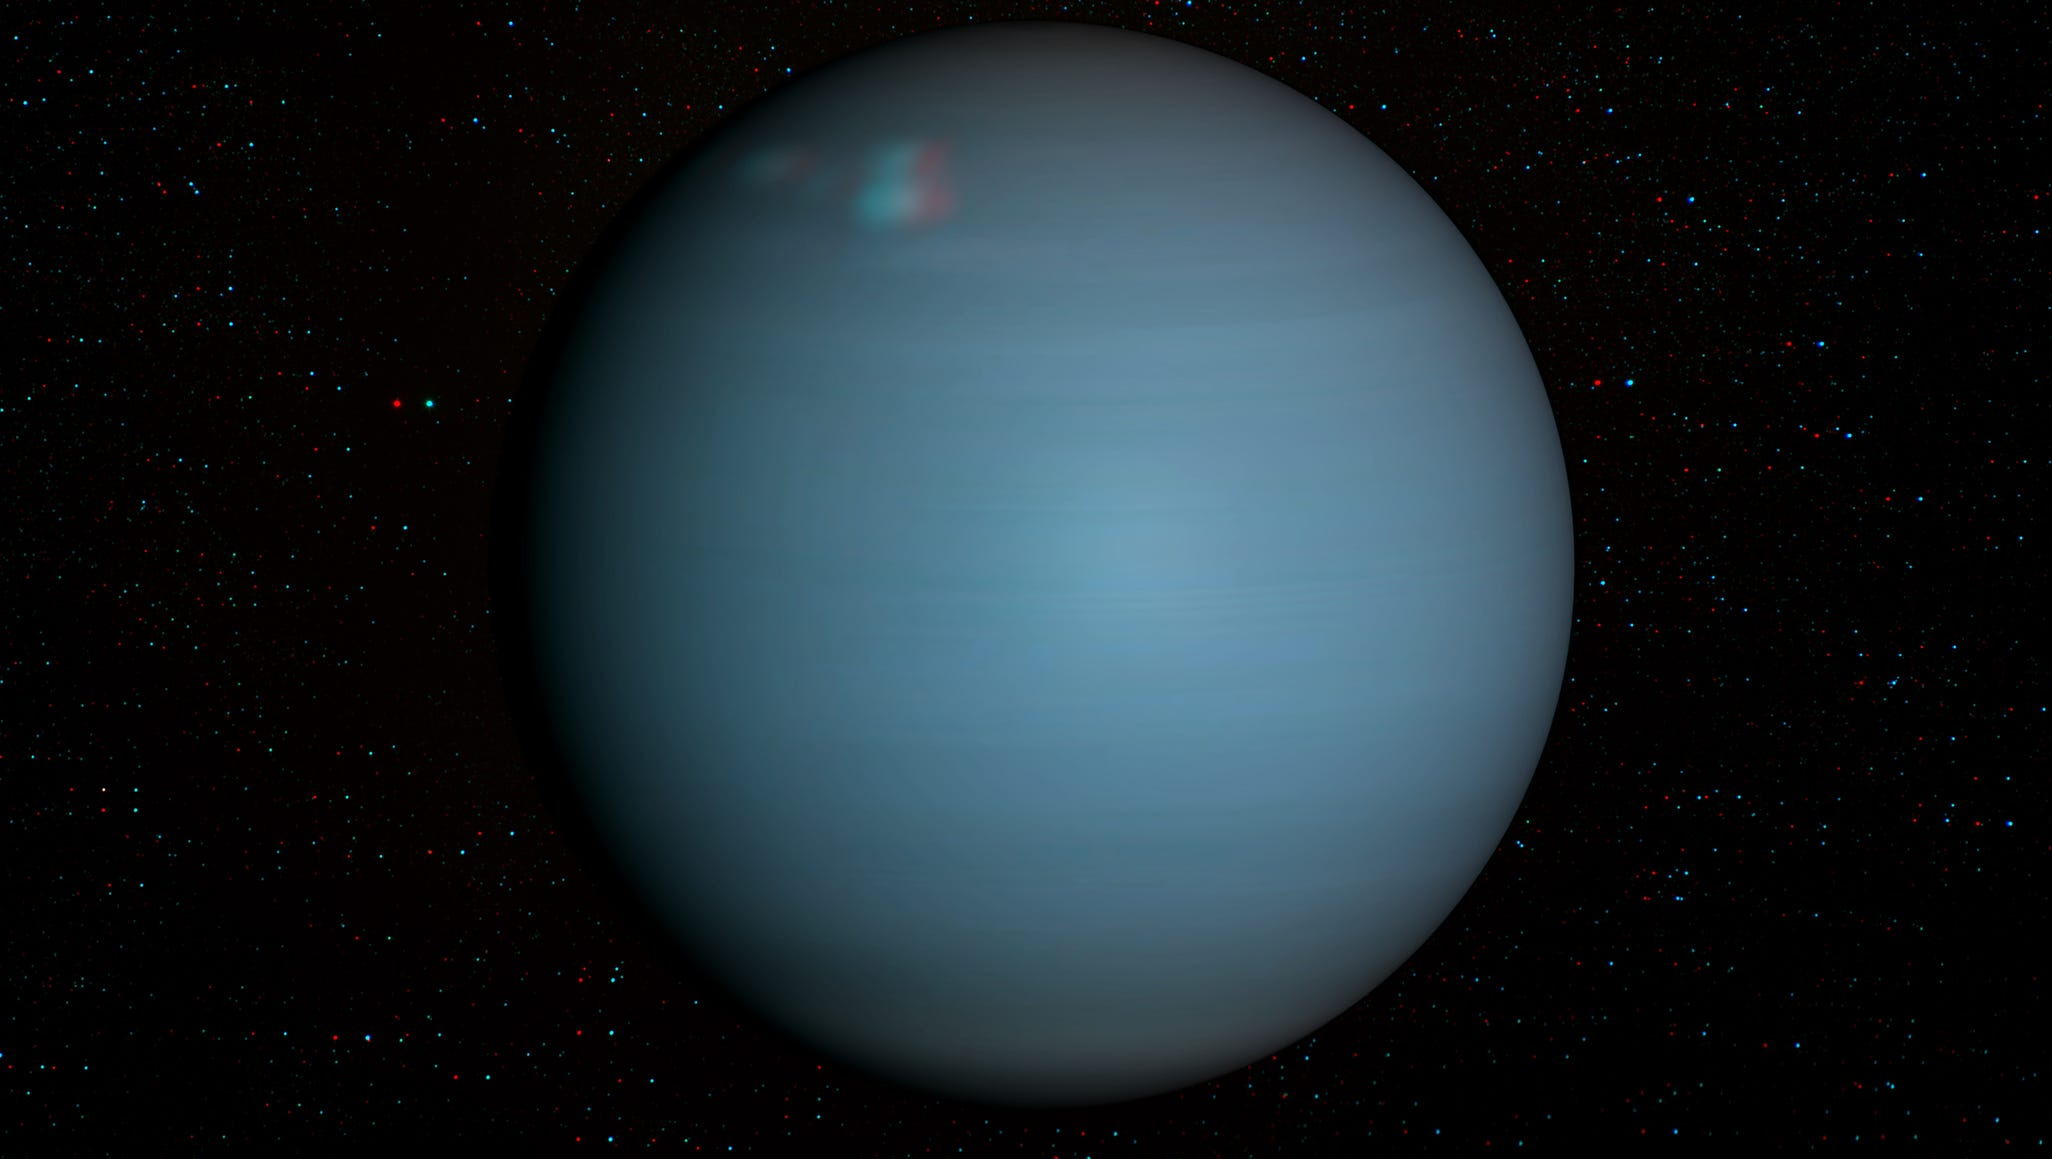 Uranus will be visible with the naked eye tonight